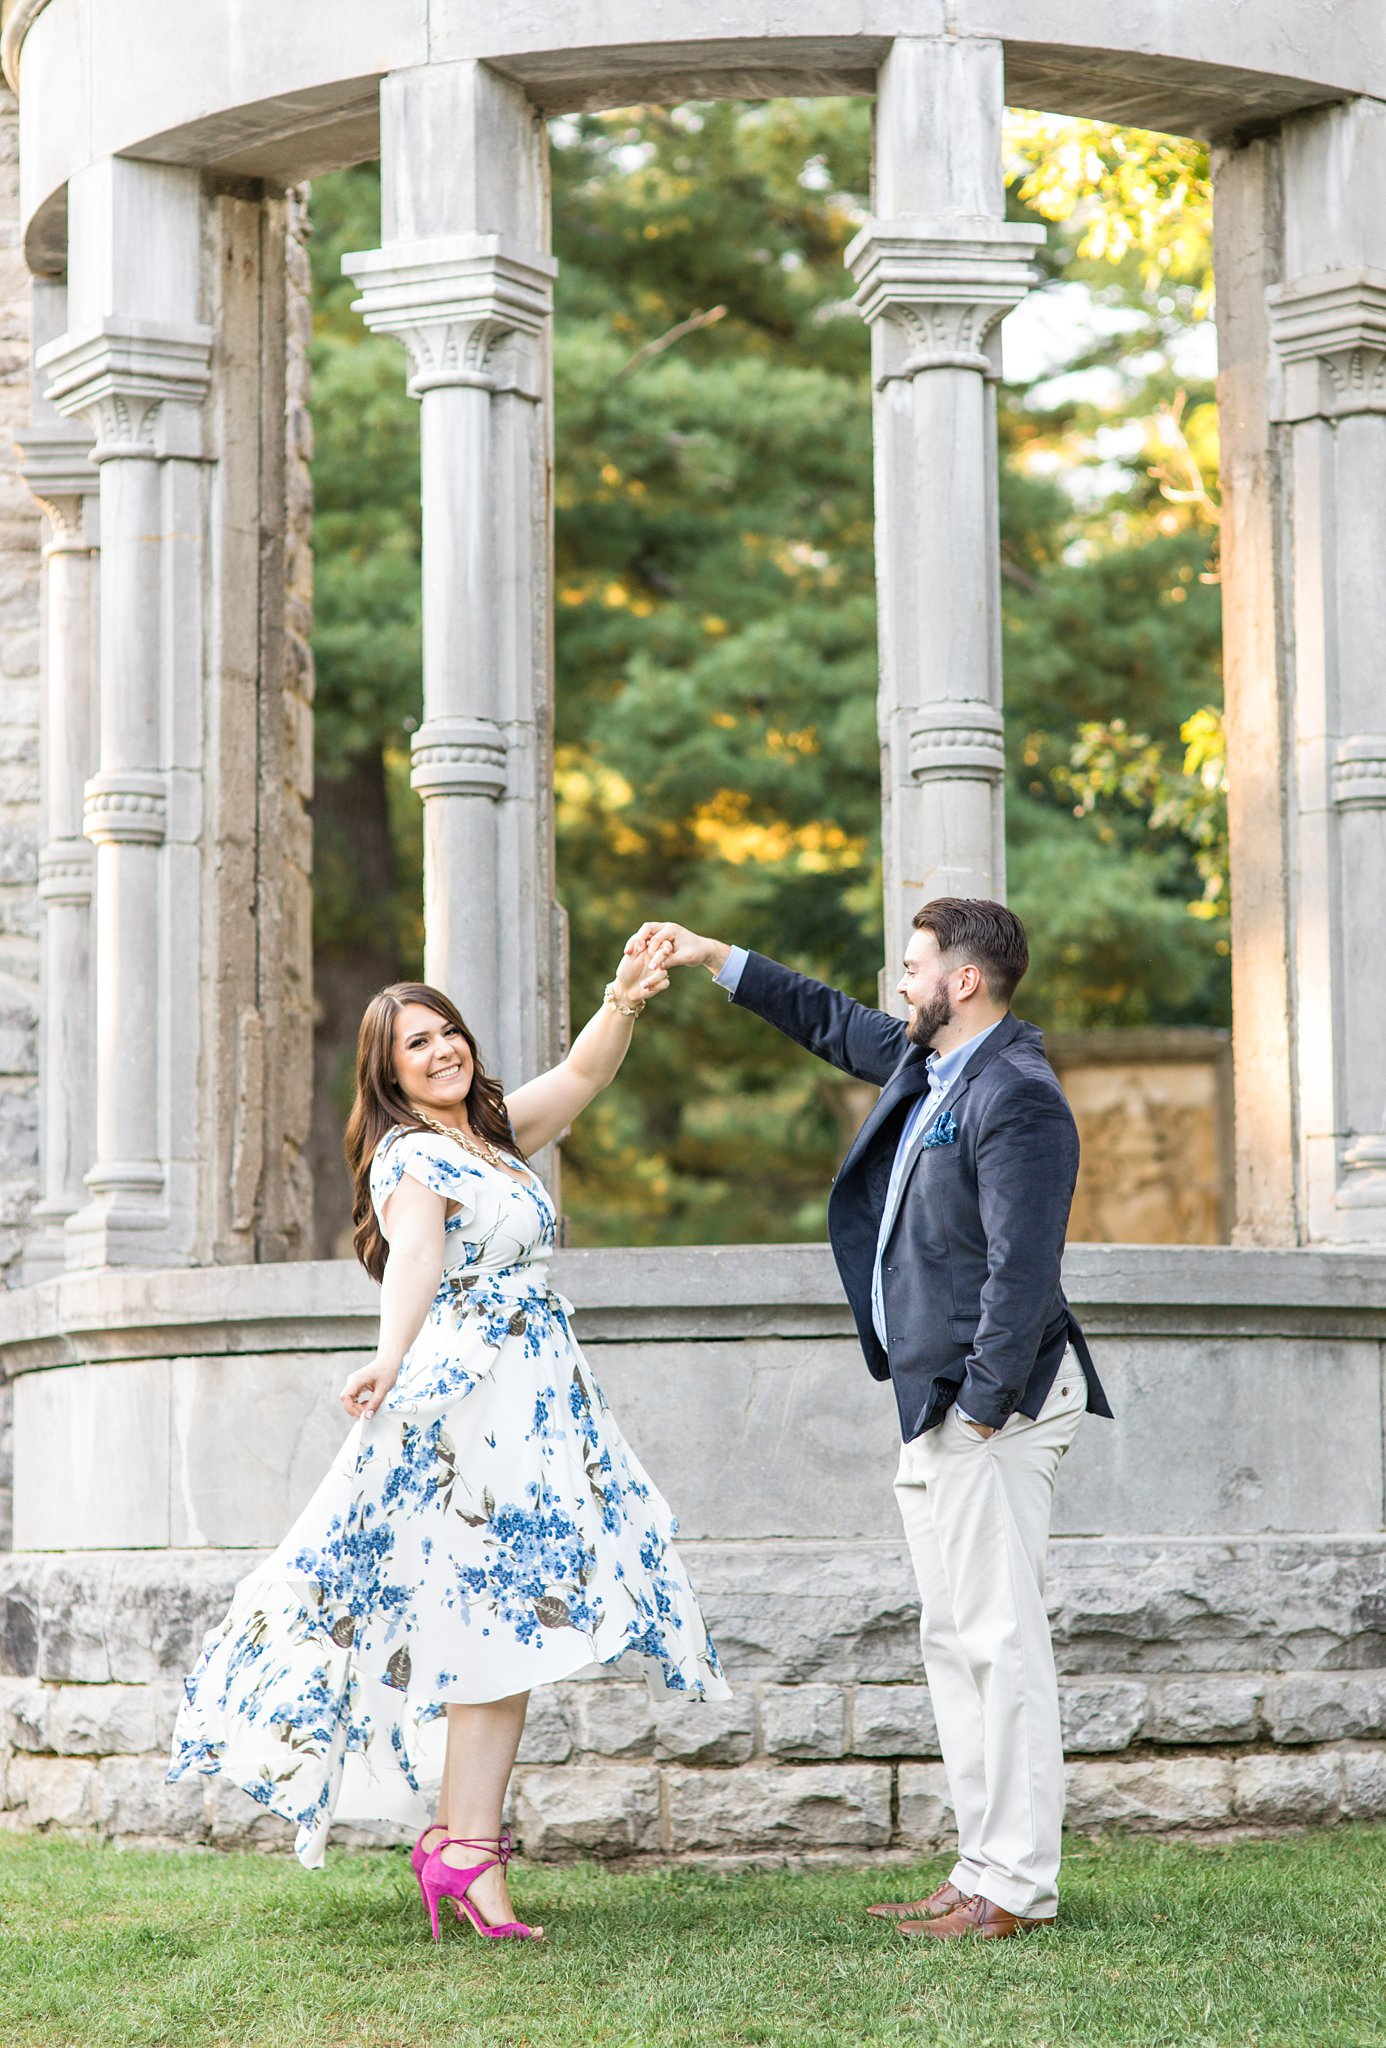 Twirl with white dress and pink shoes, Mackenzie King Estate Engagement Photos by Amy Pinder Photography